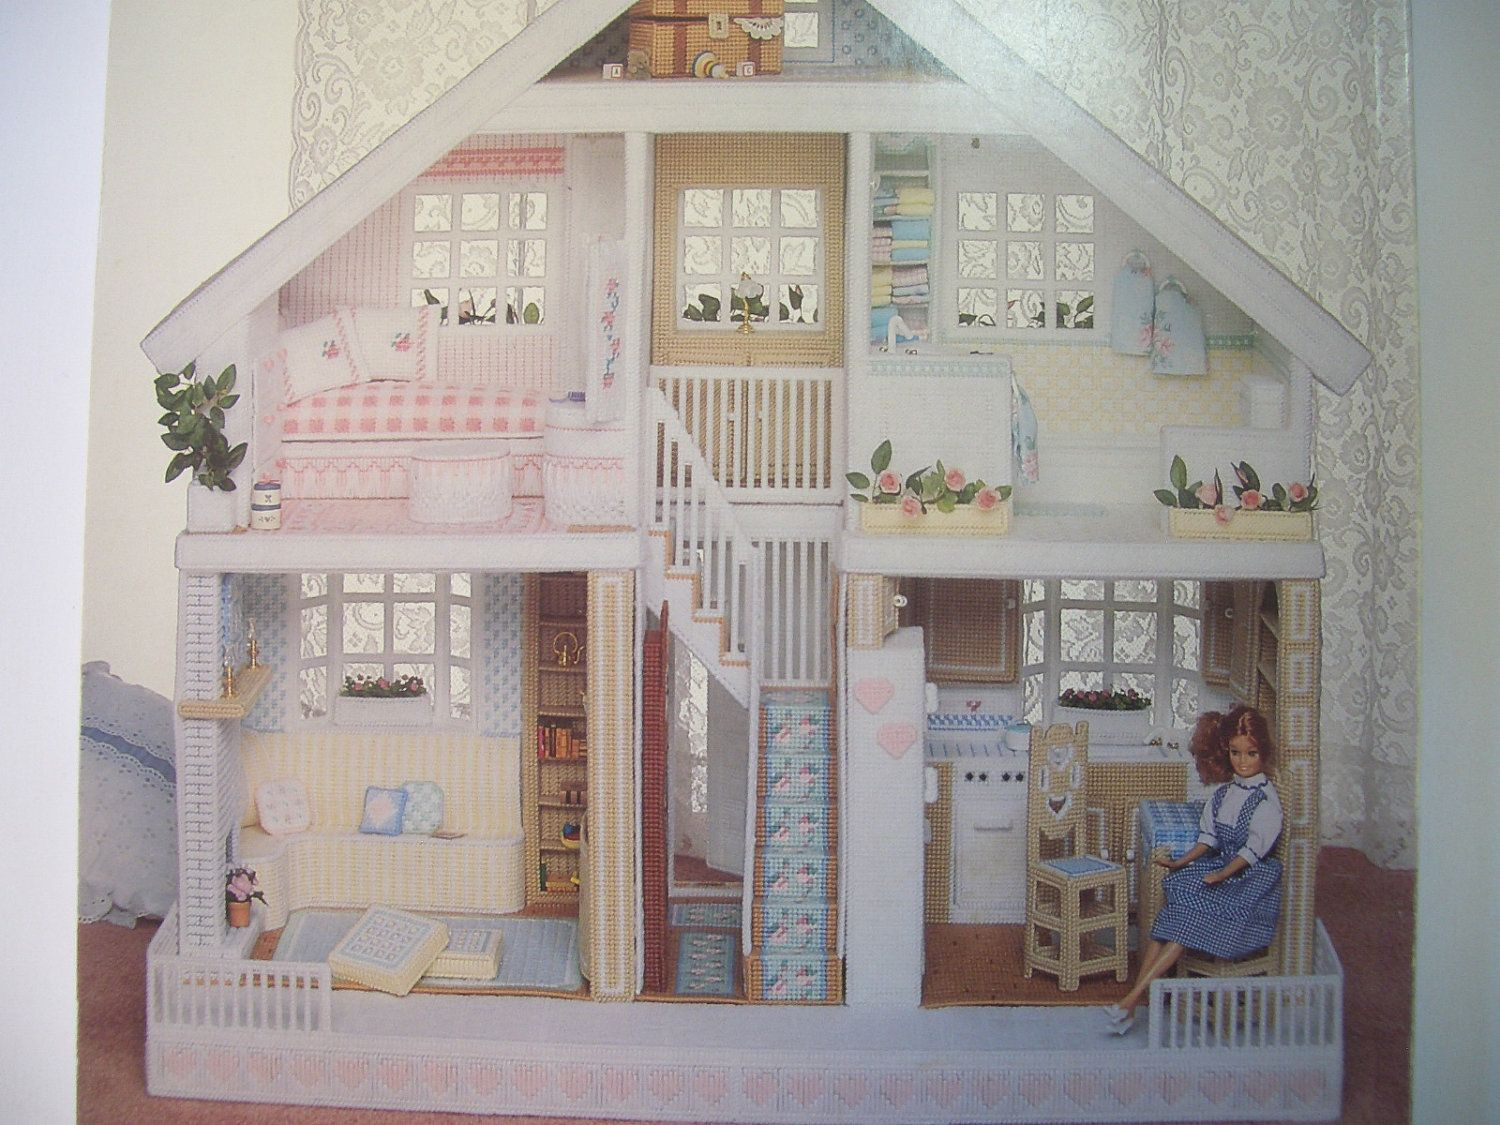 Free NFL Plastic Canvas Patterns   Fashion Doll House in Plastic Canvas  Pattern Book by AnneN. Free NFL Plastic Canvas Patterns   Fashion Doll House in Plastic